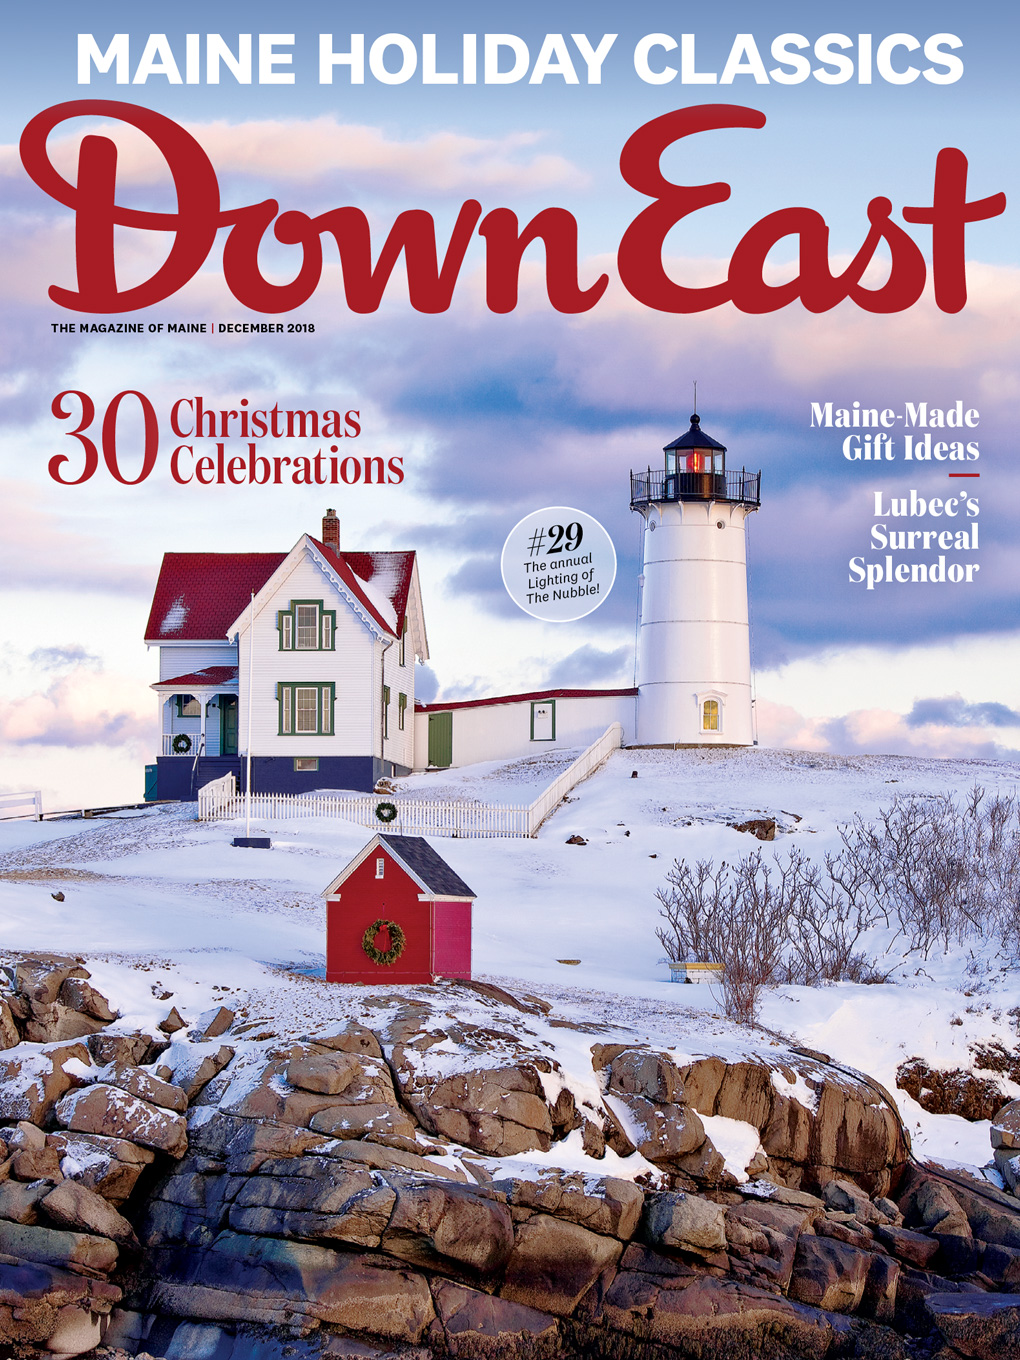 Down_East_Magazine_December_2018_Cover.jpg